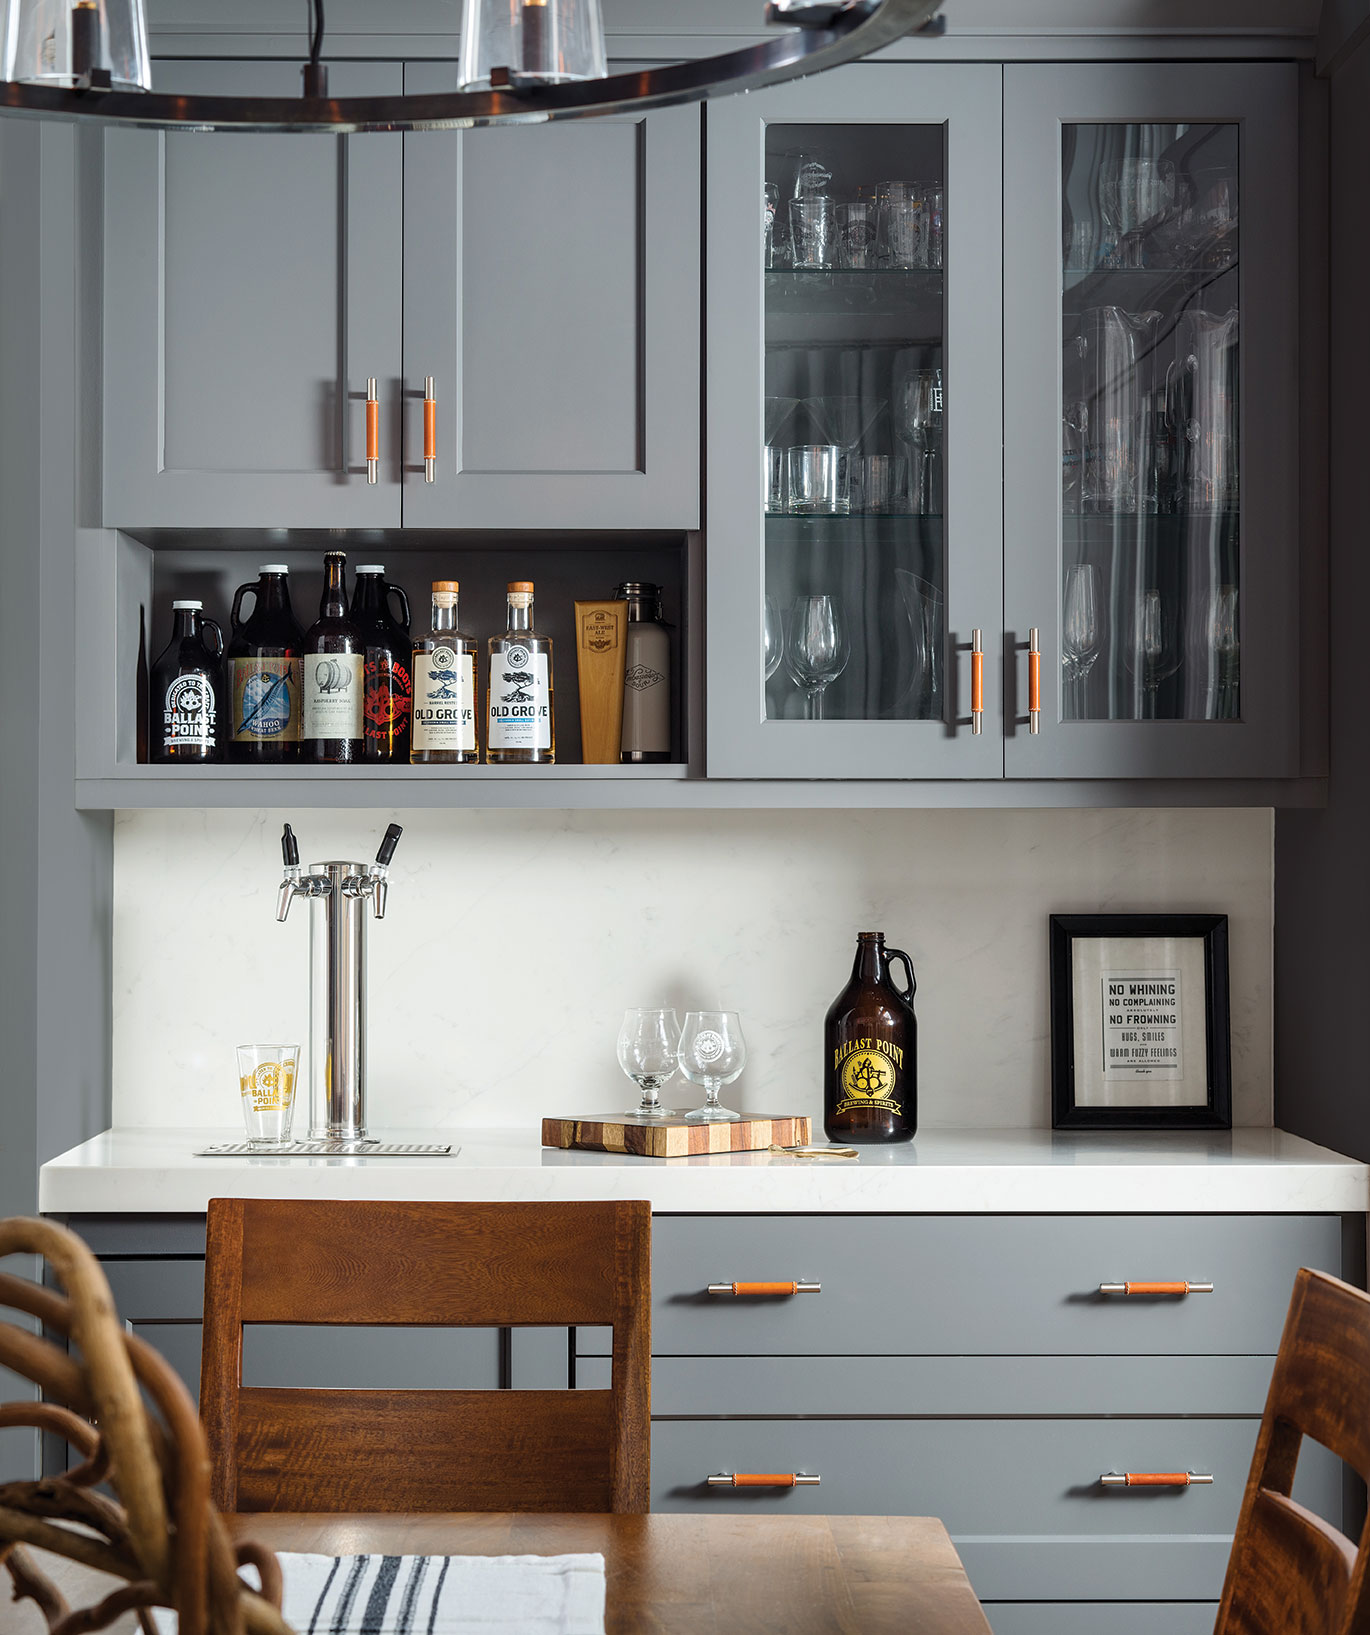 bar area in dining space with built-in taps kegerator